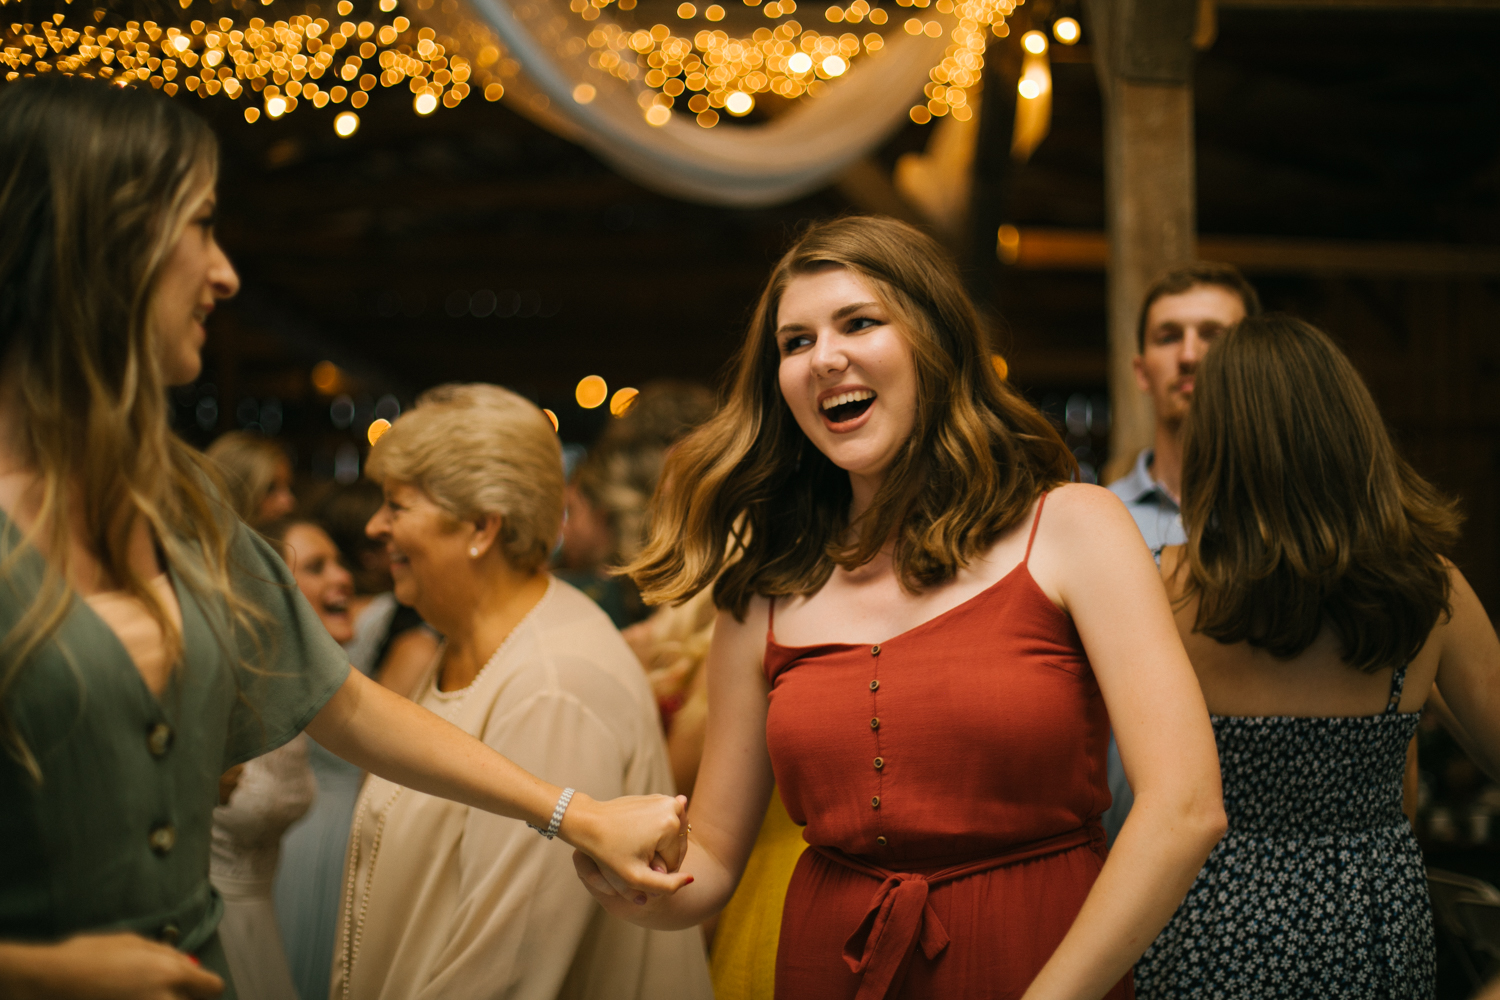 2019.06.01_CraskWedding_Starks-209.jpg